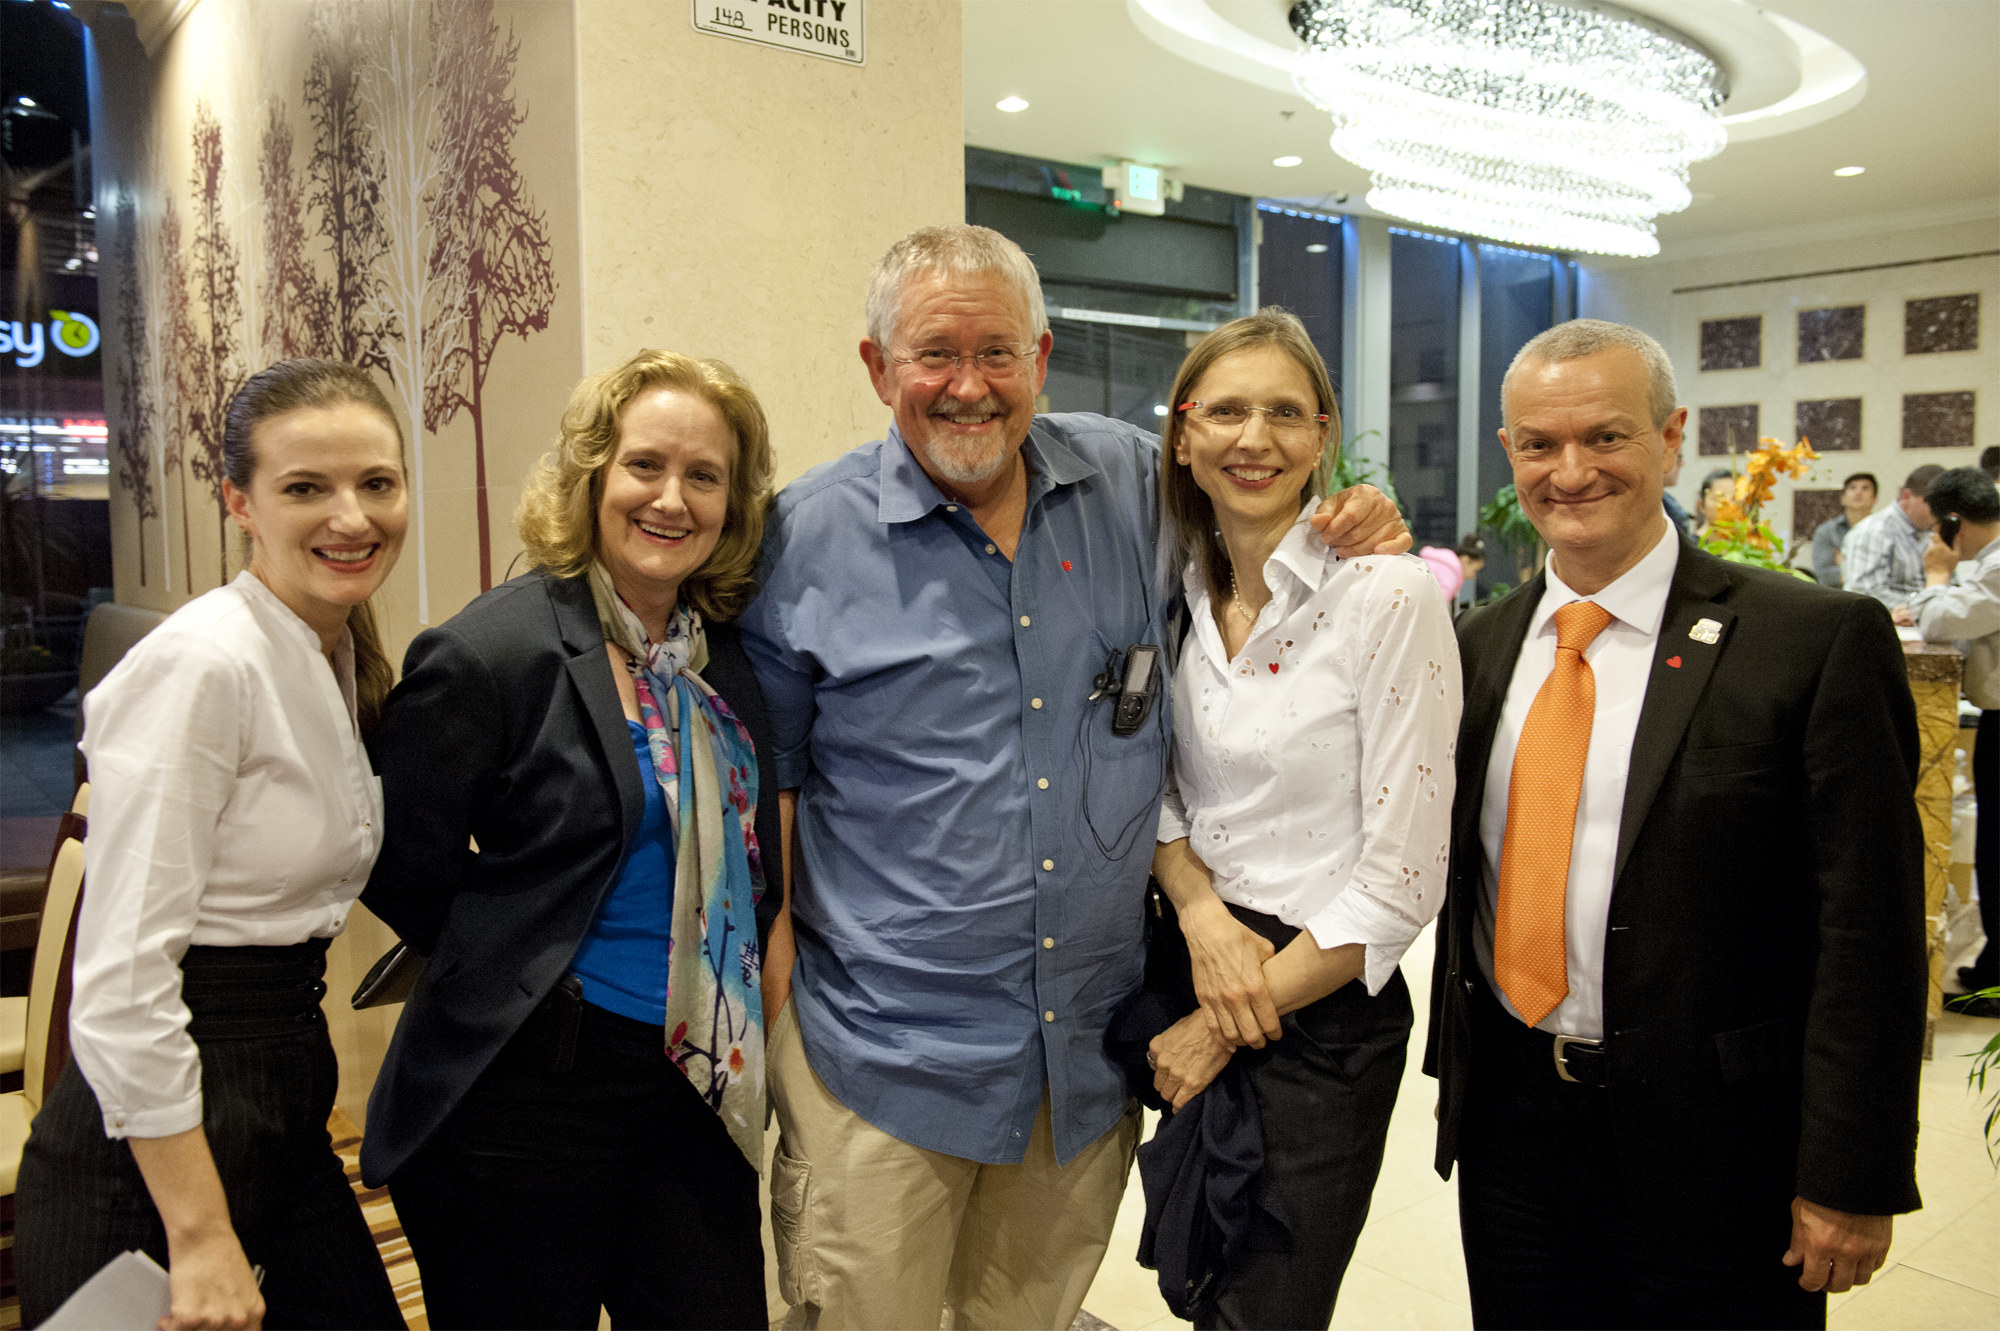 Galaxy Press and Author Services administrators welcome Orson Scott Card.